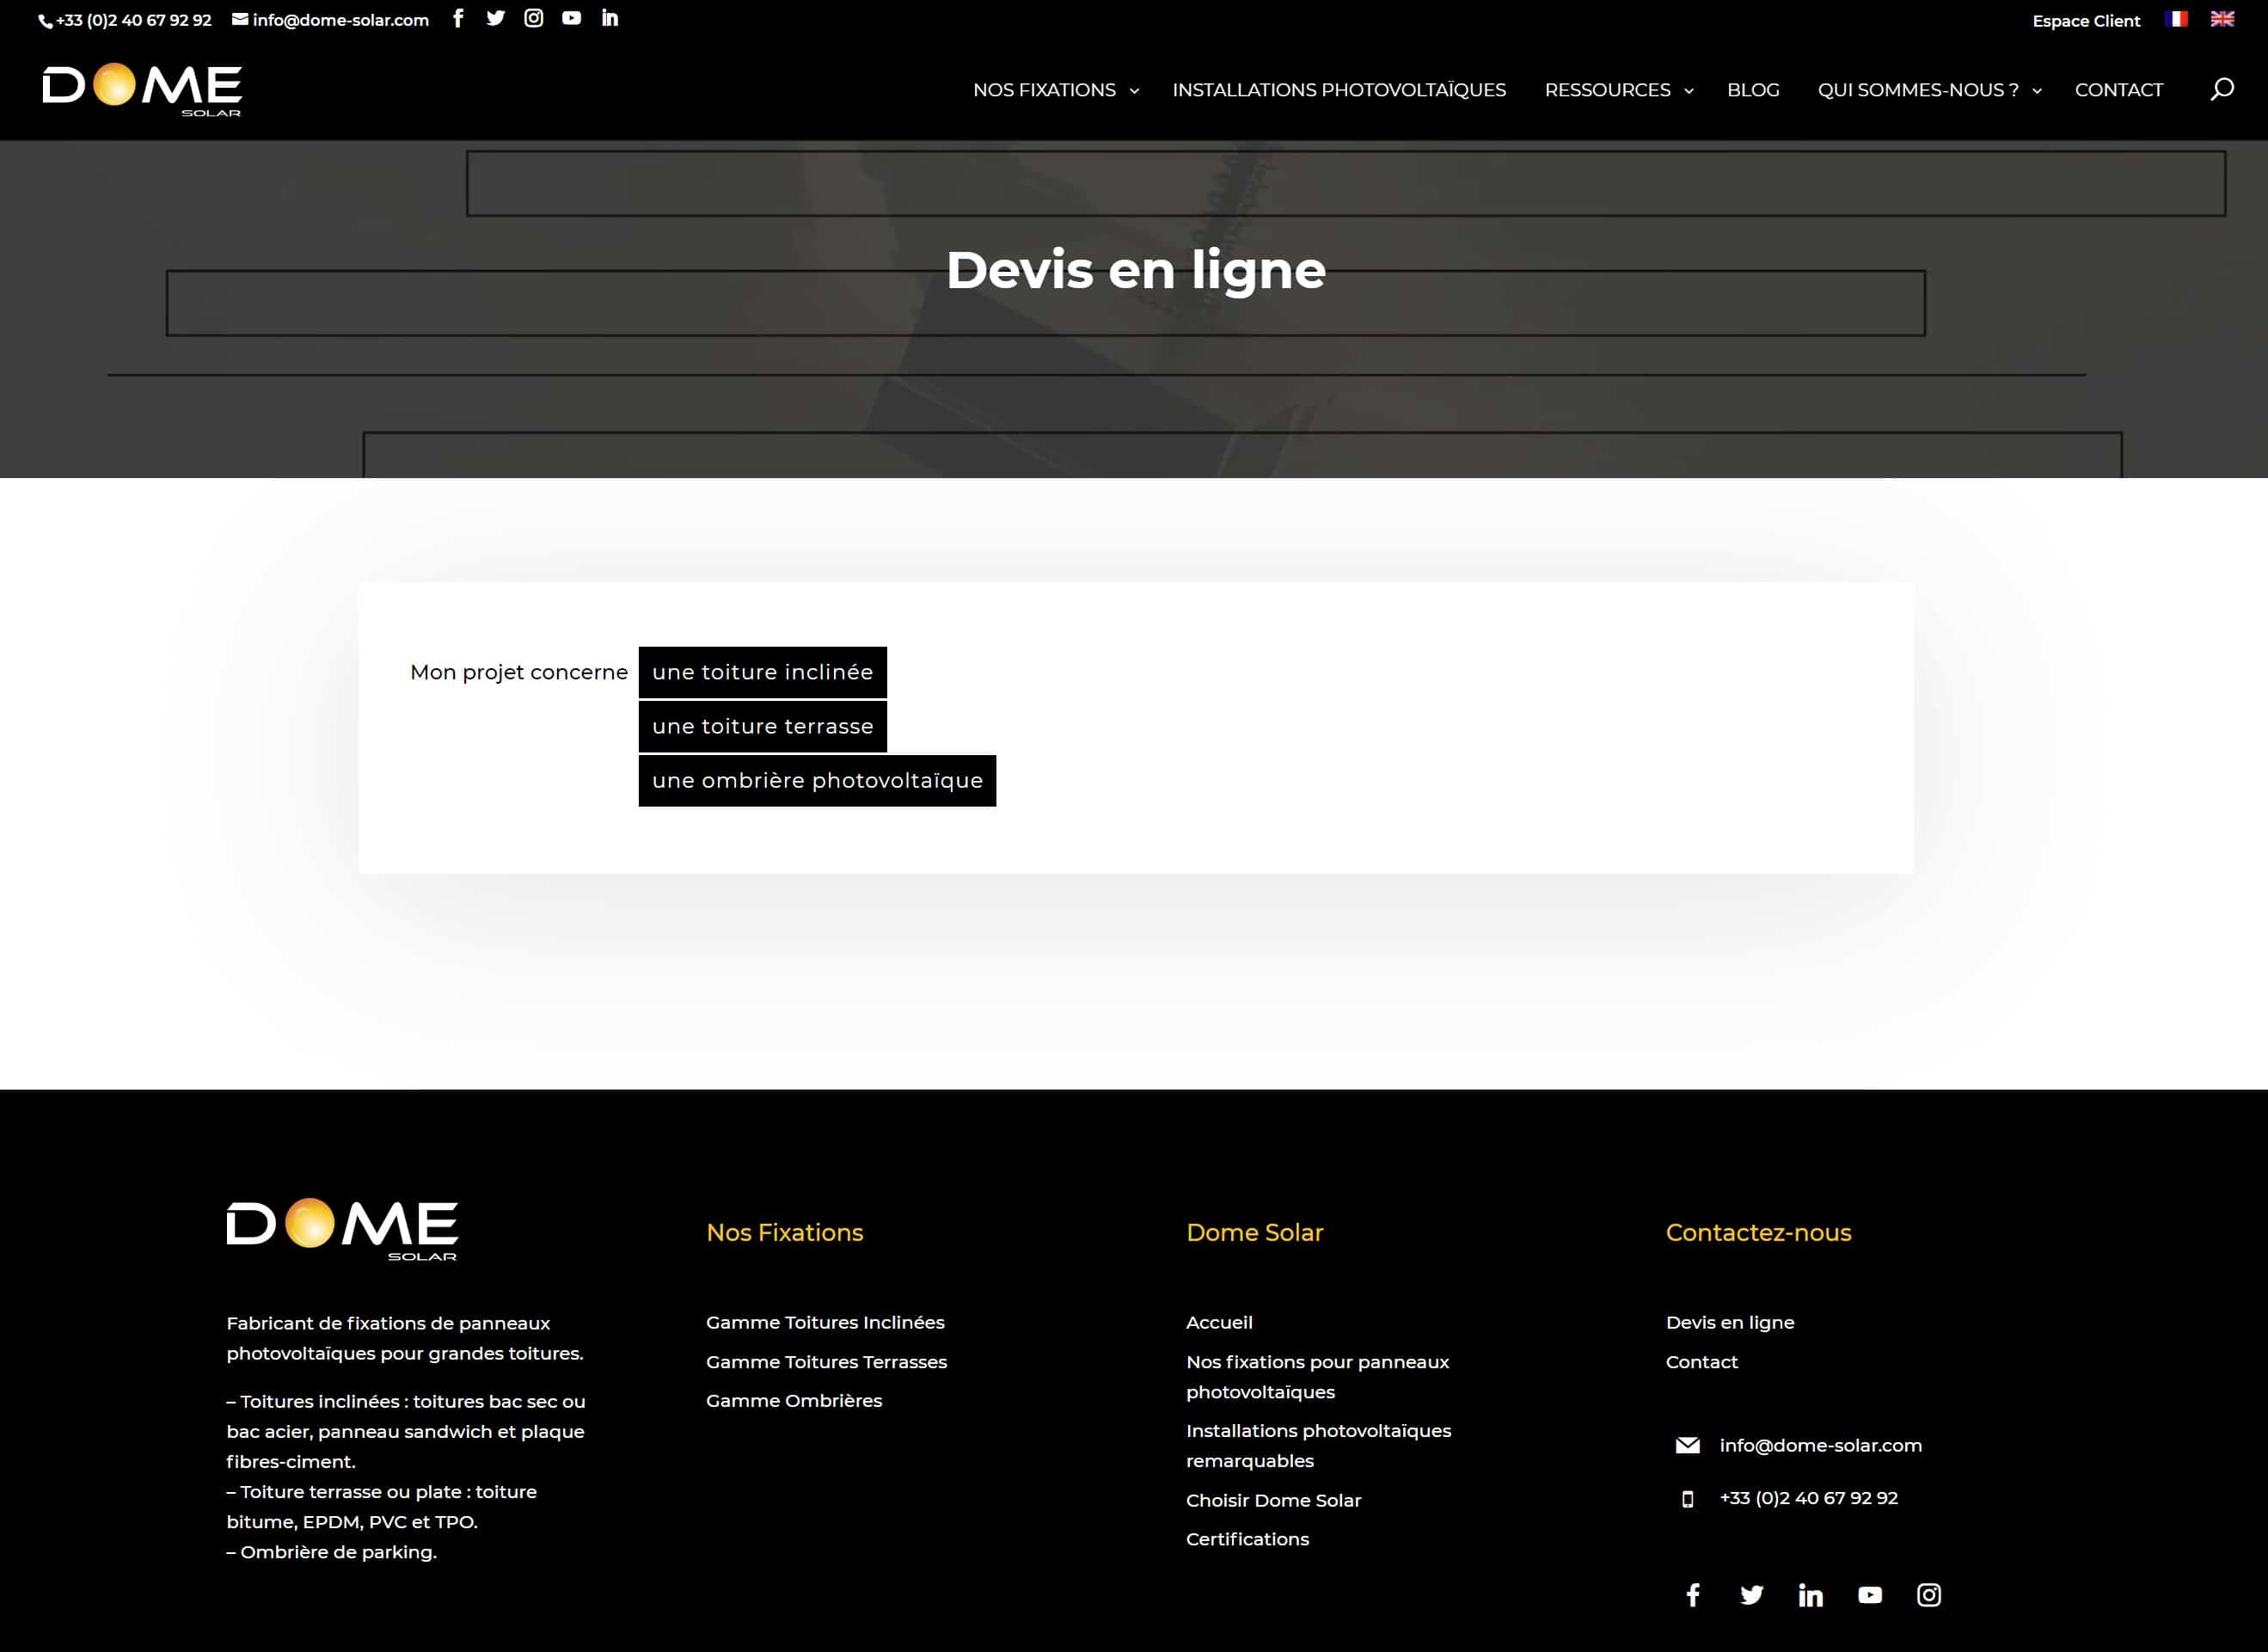 Dome Solar improves the functionality of its website